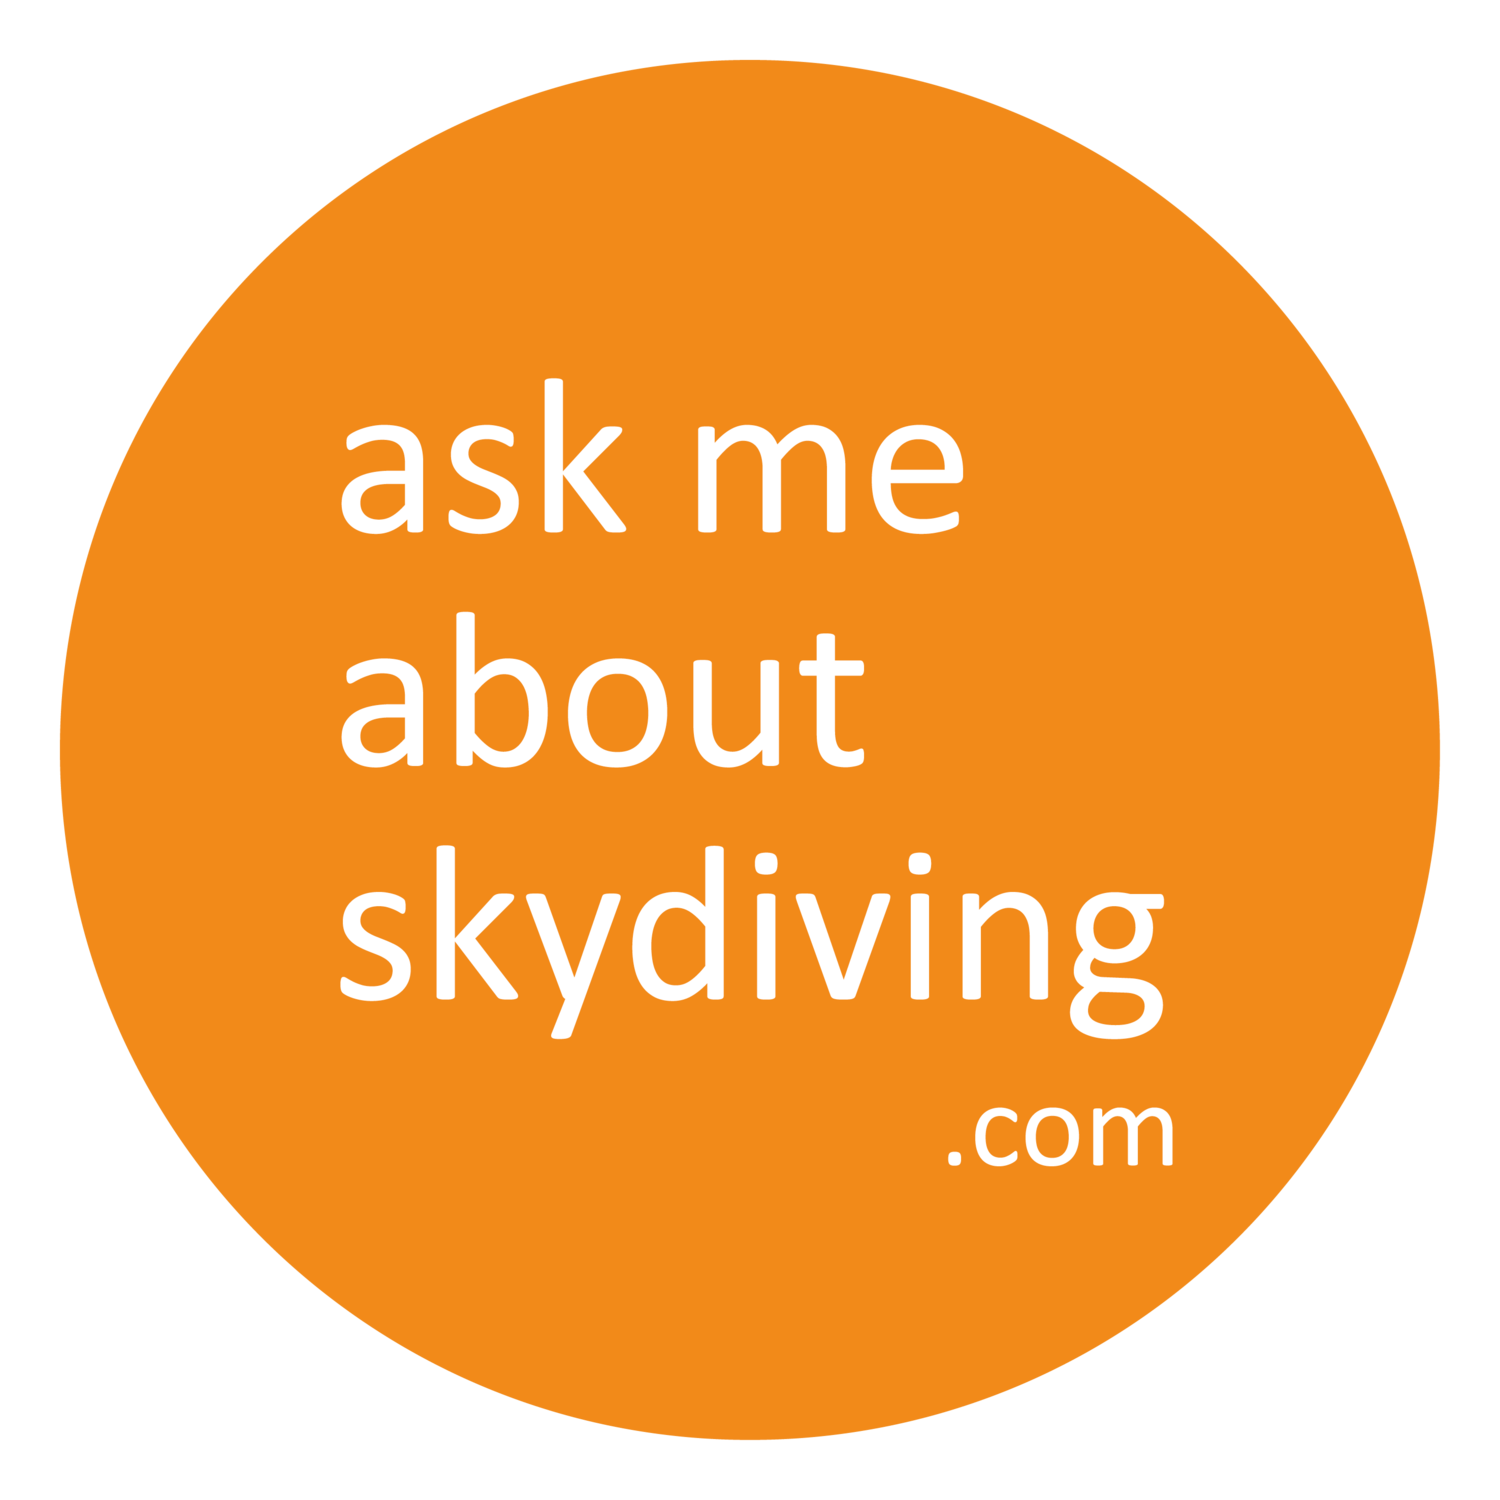 AskMeAboutSkydiving.com